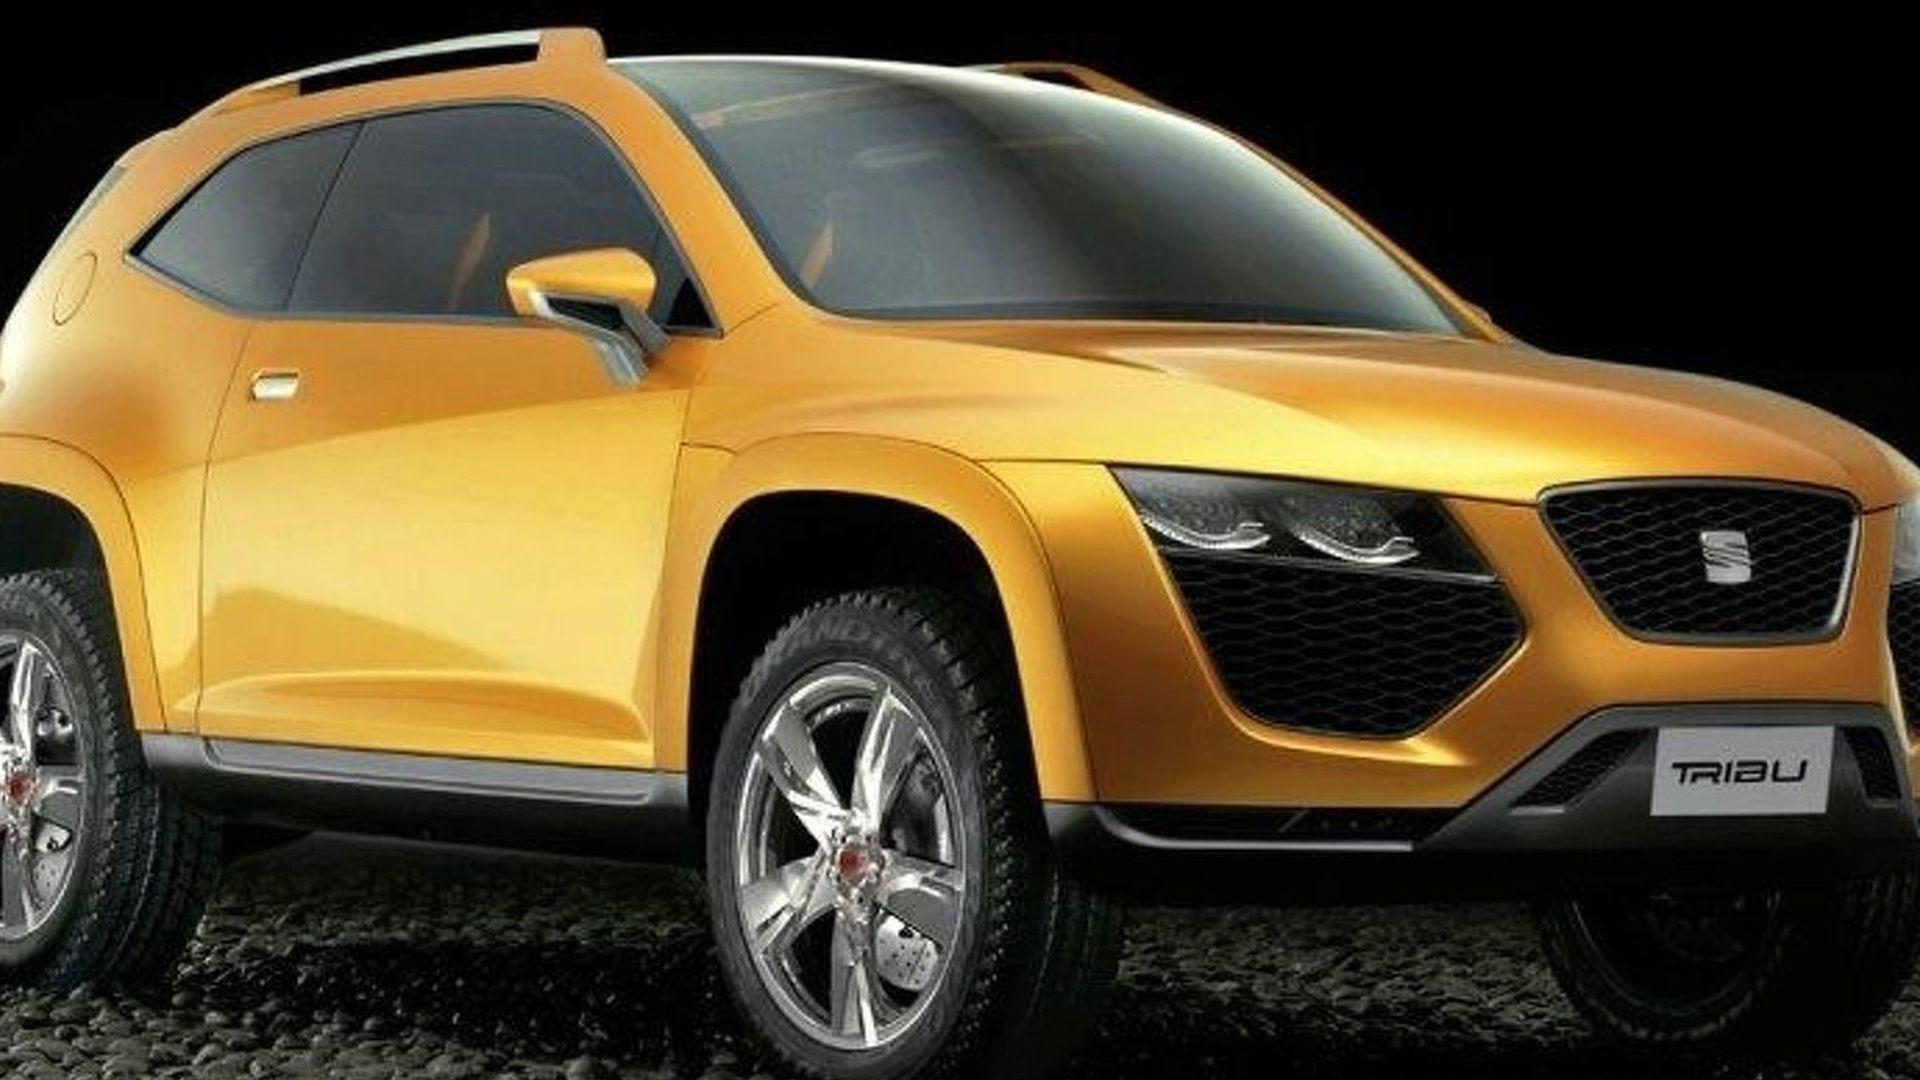 SEAT Tribu Concept photos leaked